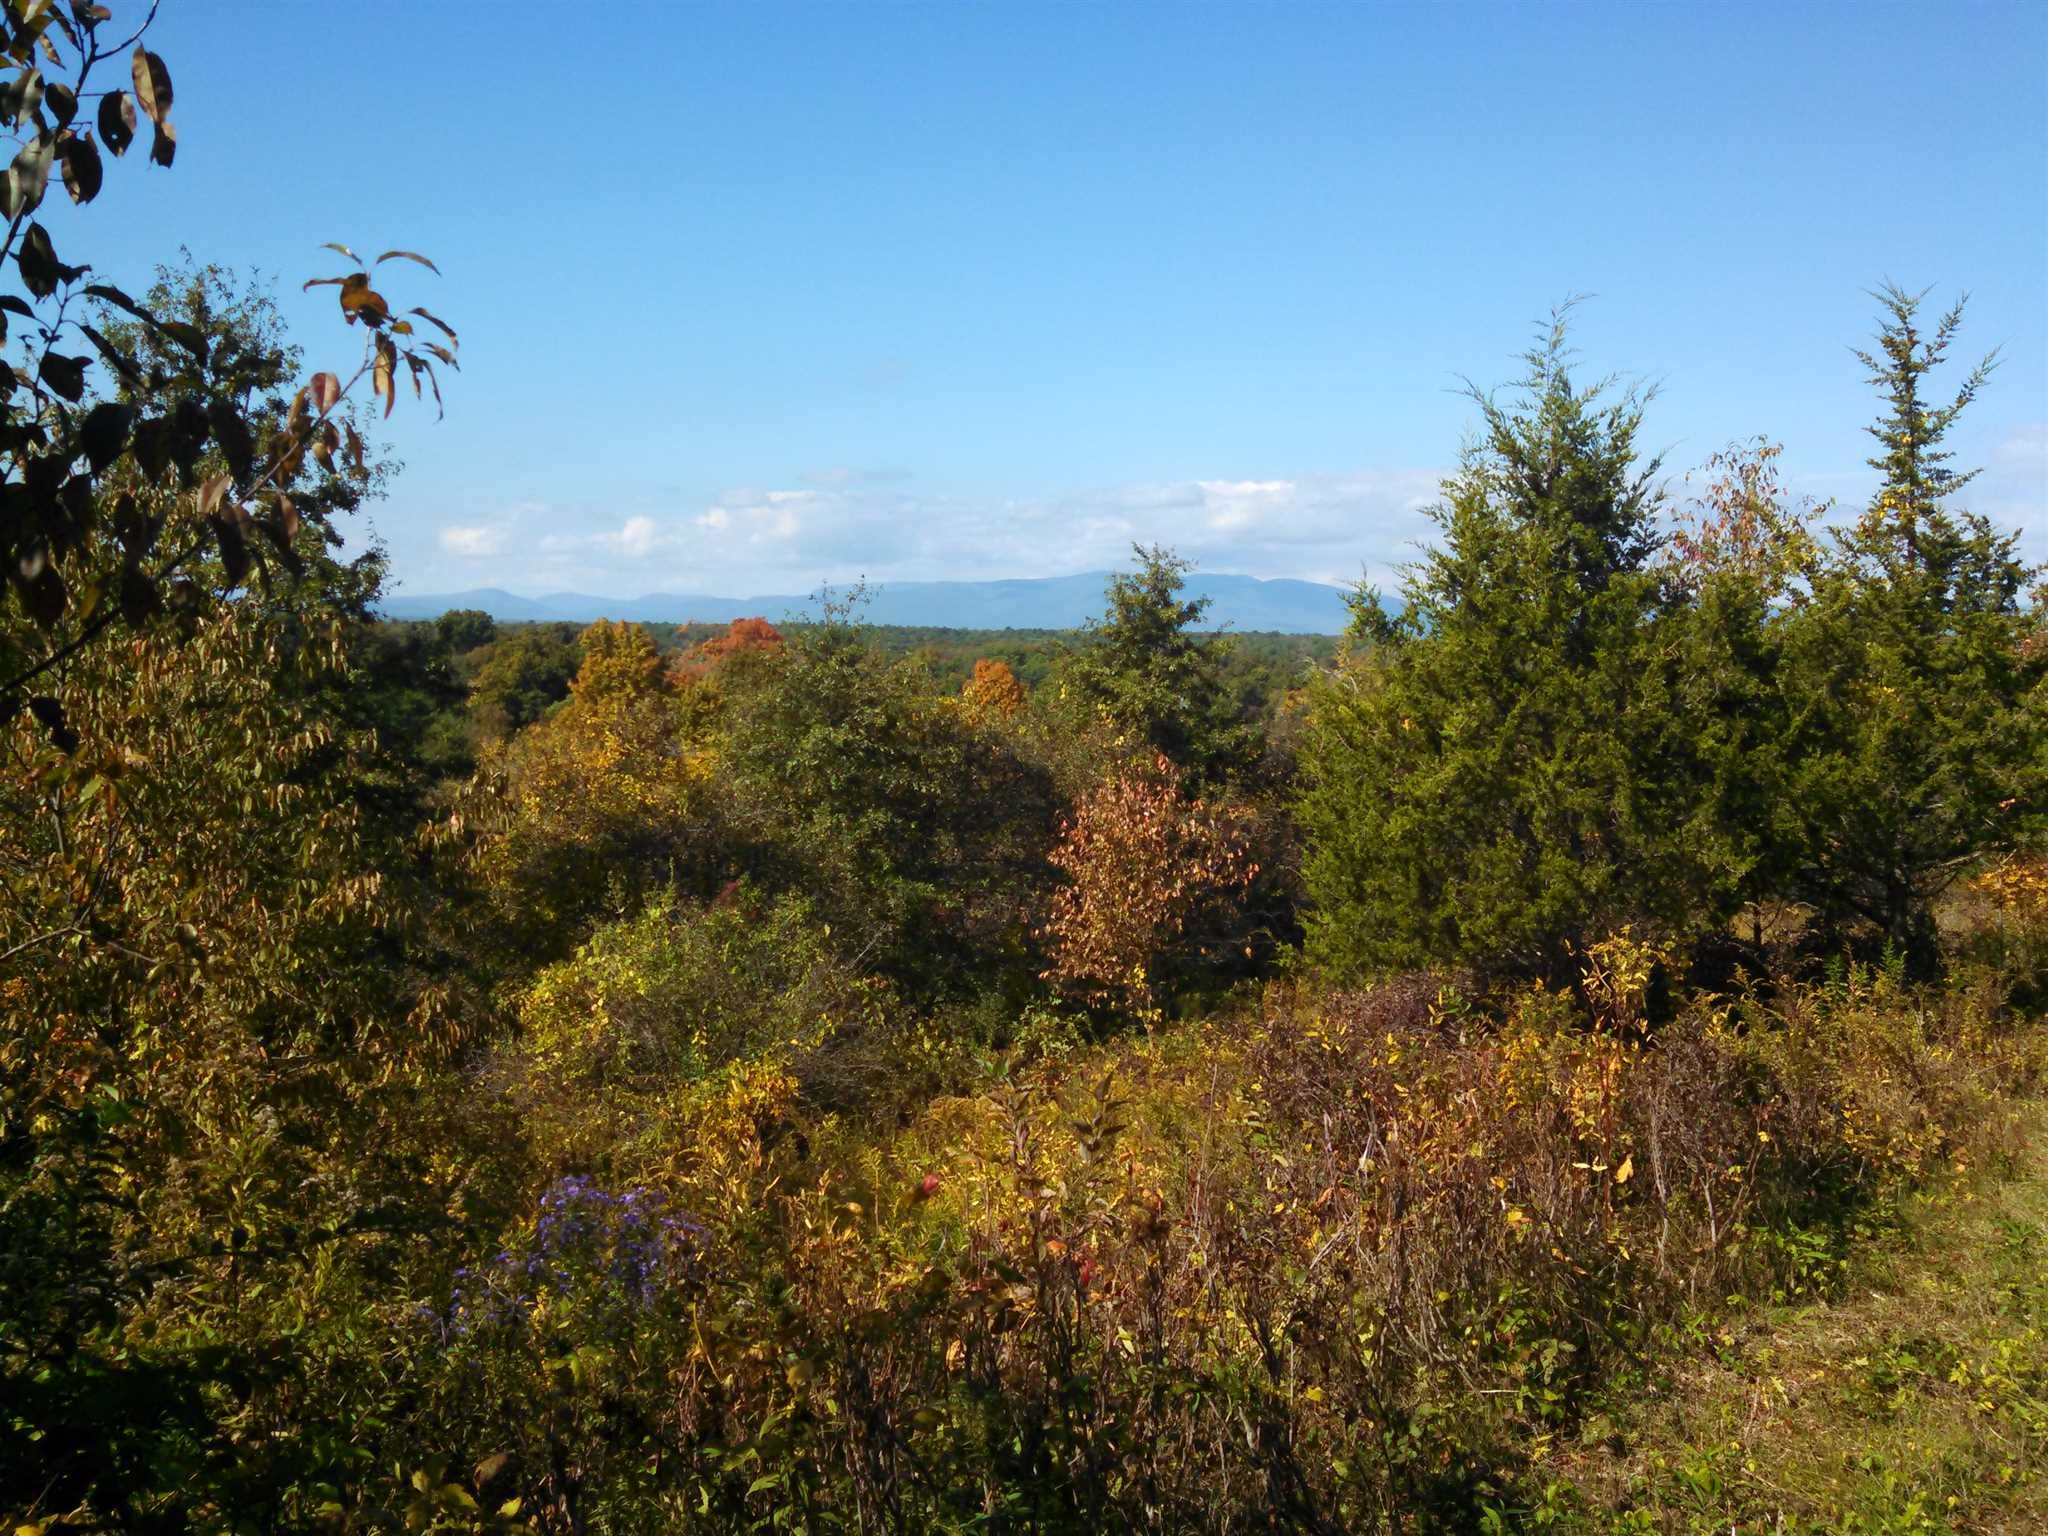 Land for Sale at WEY Road WEY Road Rhinebeck, New York 12572 United States